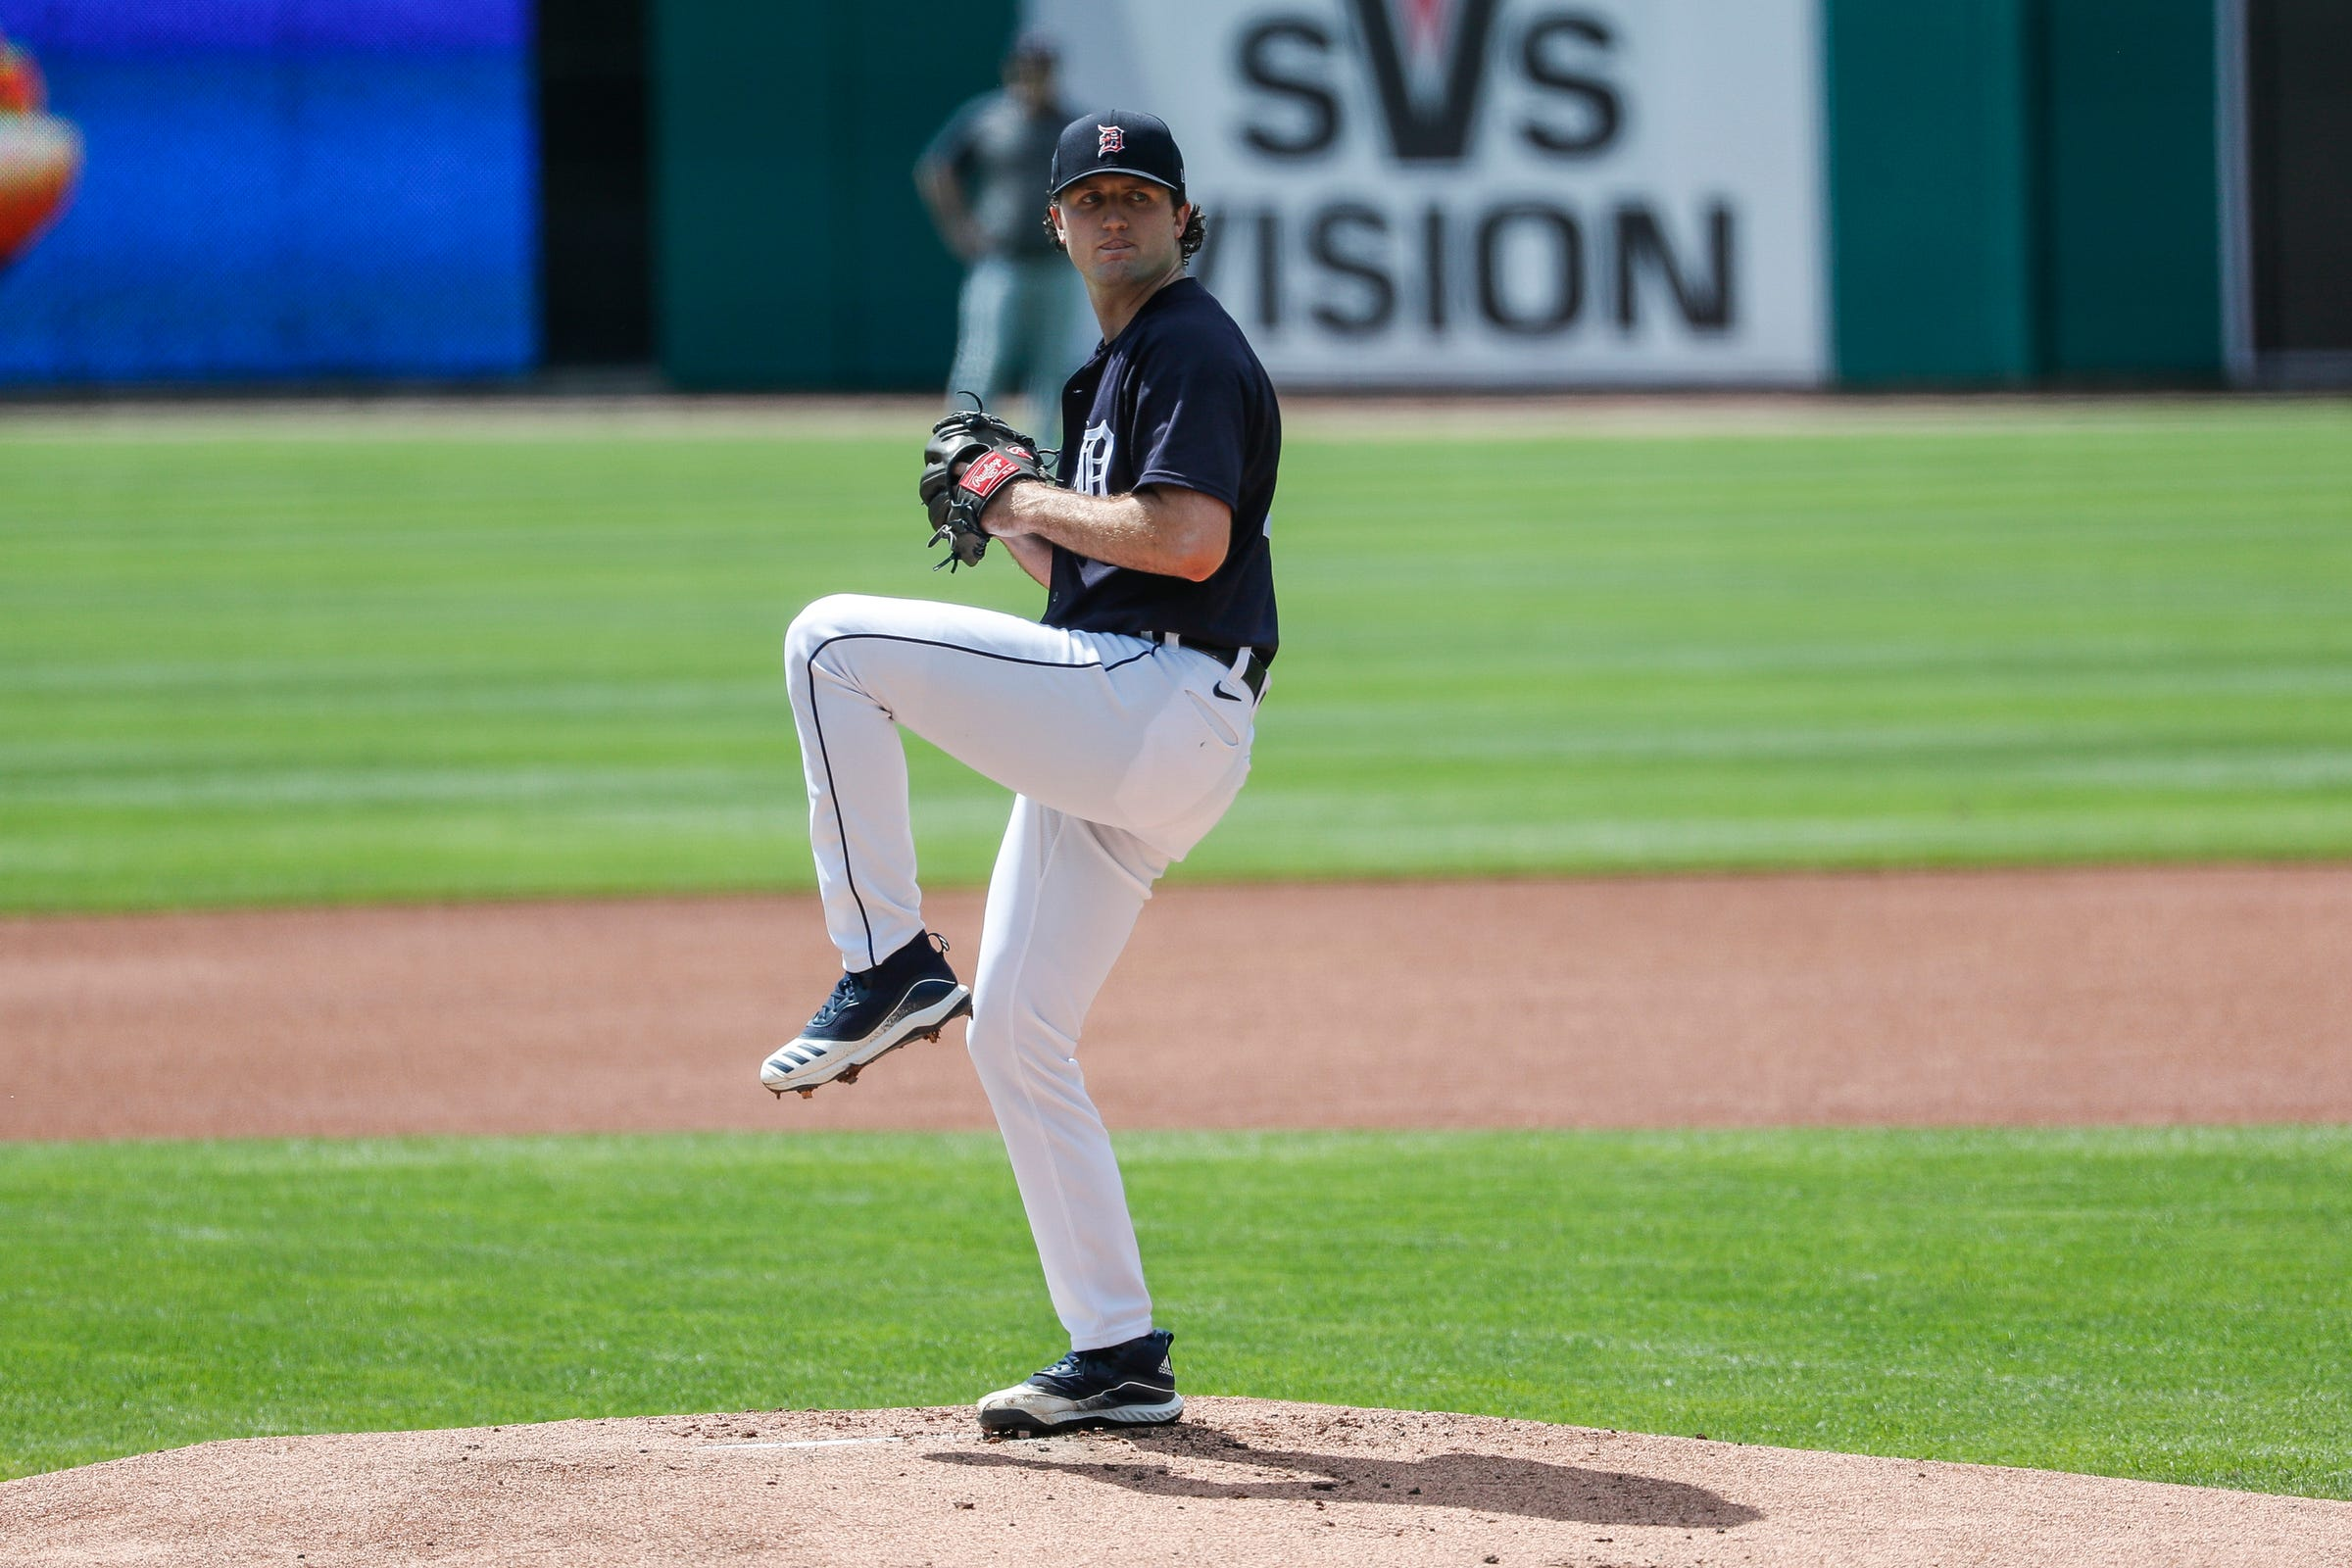 Detroit Tigers pitcher Casey Mize throws during summer camp at Comerica Park in Detroit, Tuesday, July 14, 2020.